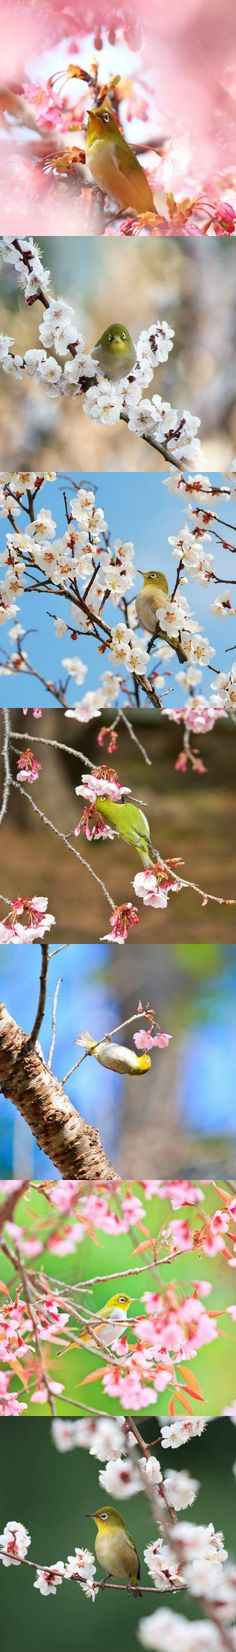 A sweet little bird with a big sweet tooth, the Japanese white-eye seems to be as prominent during springtime in Asia as the blossoming cherry and plum trees.